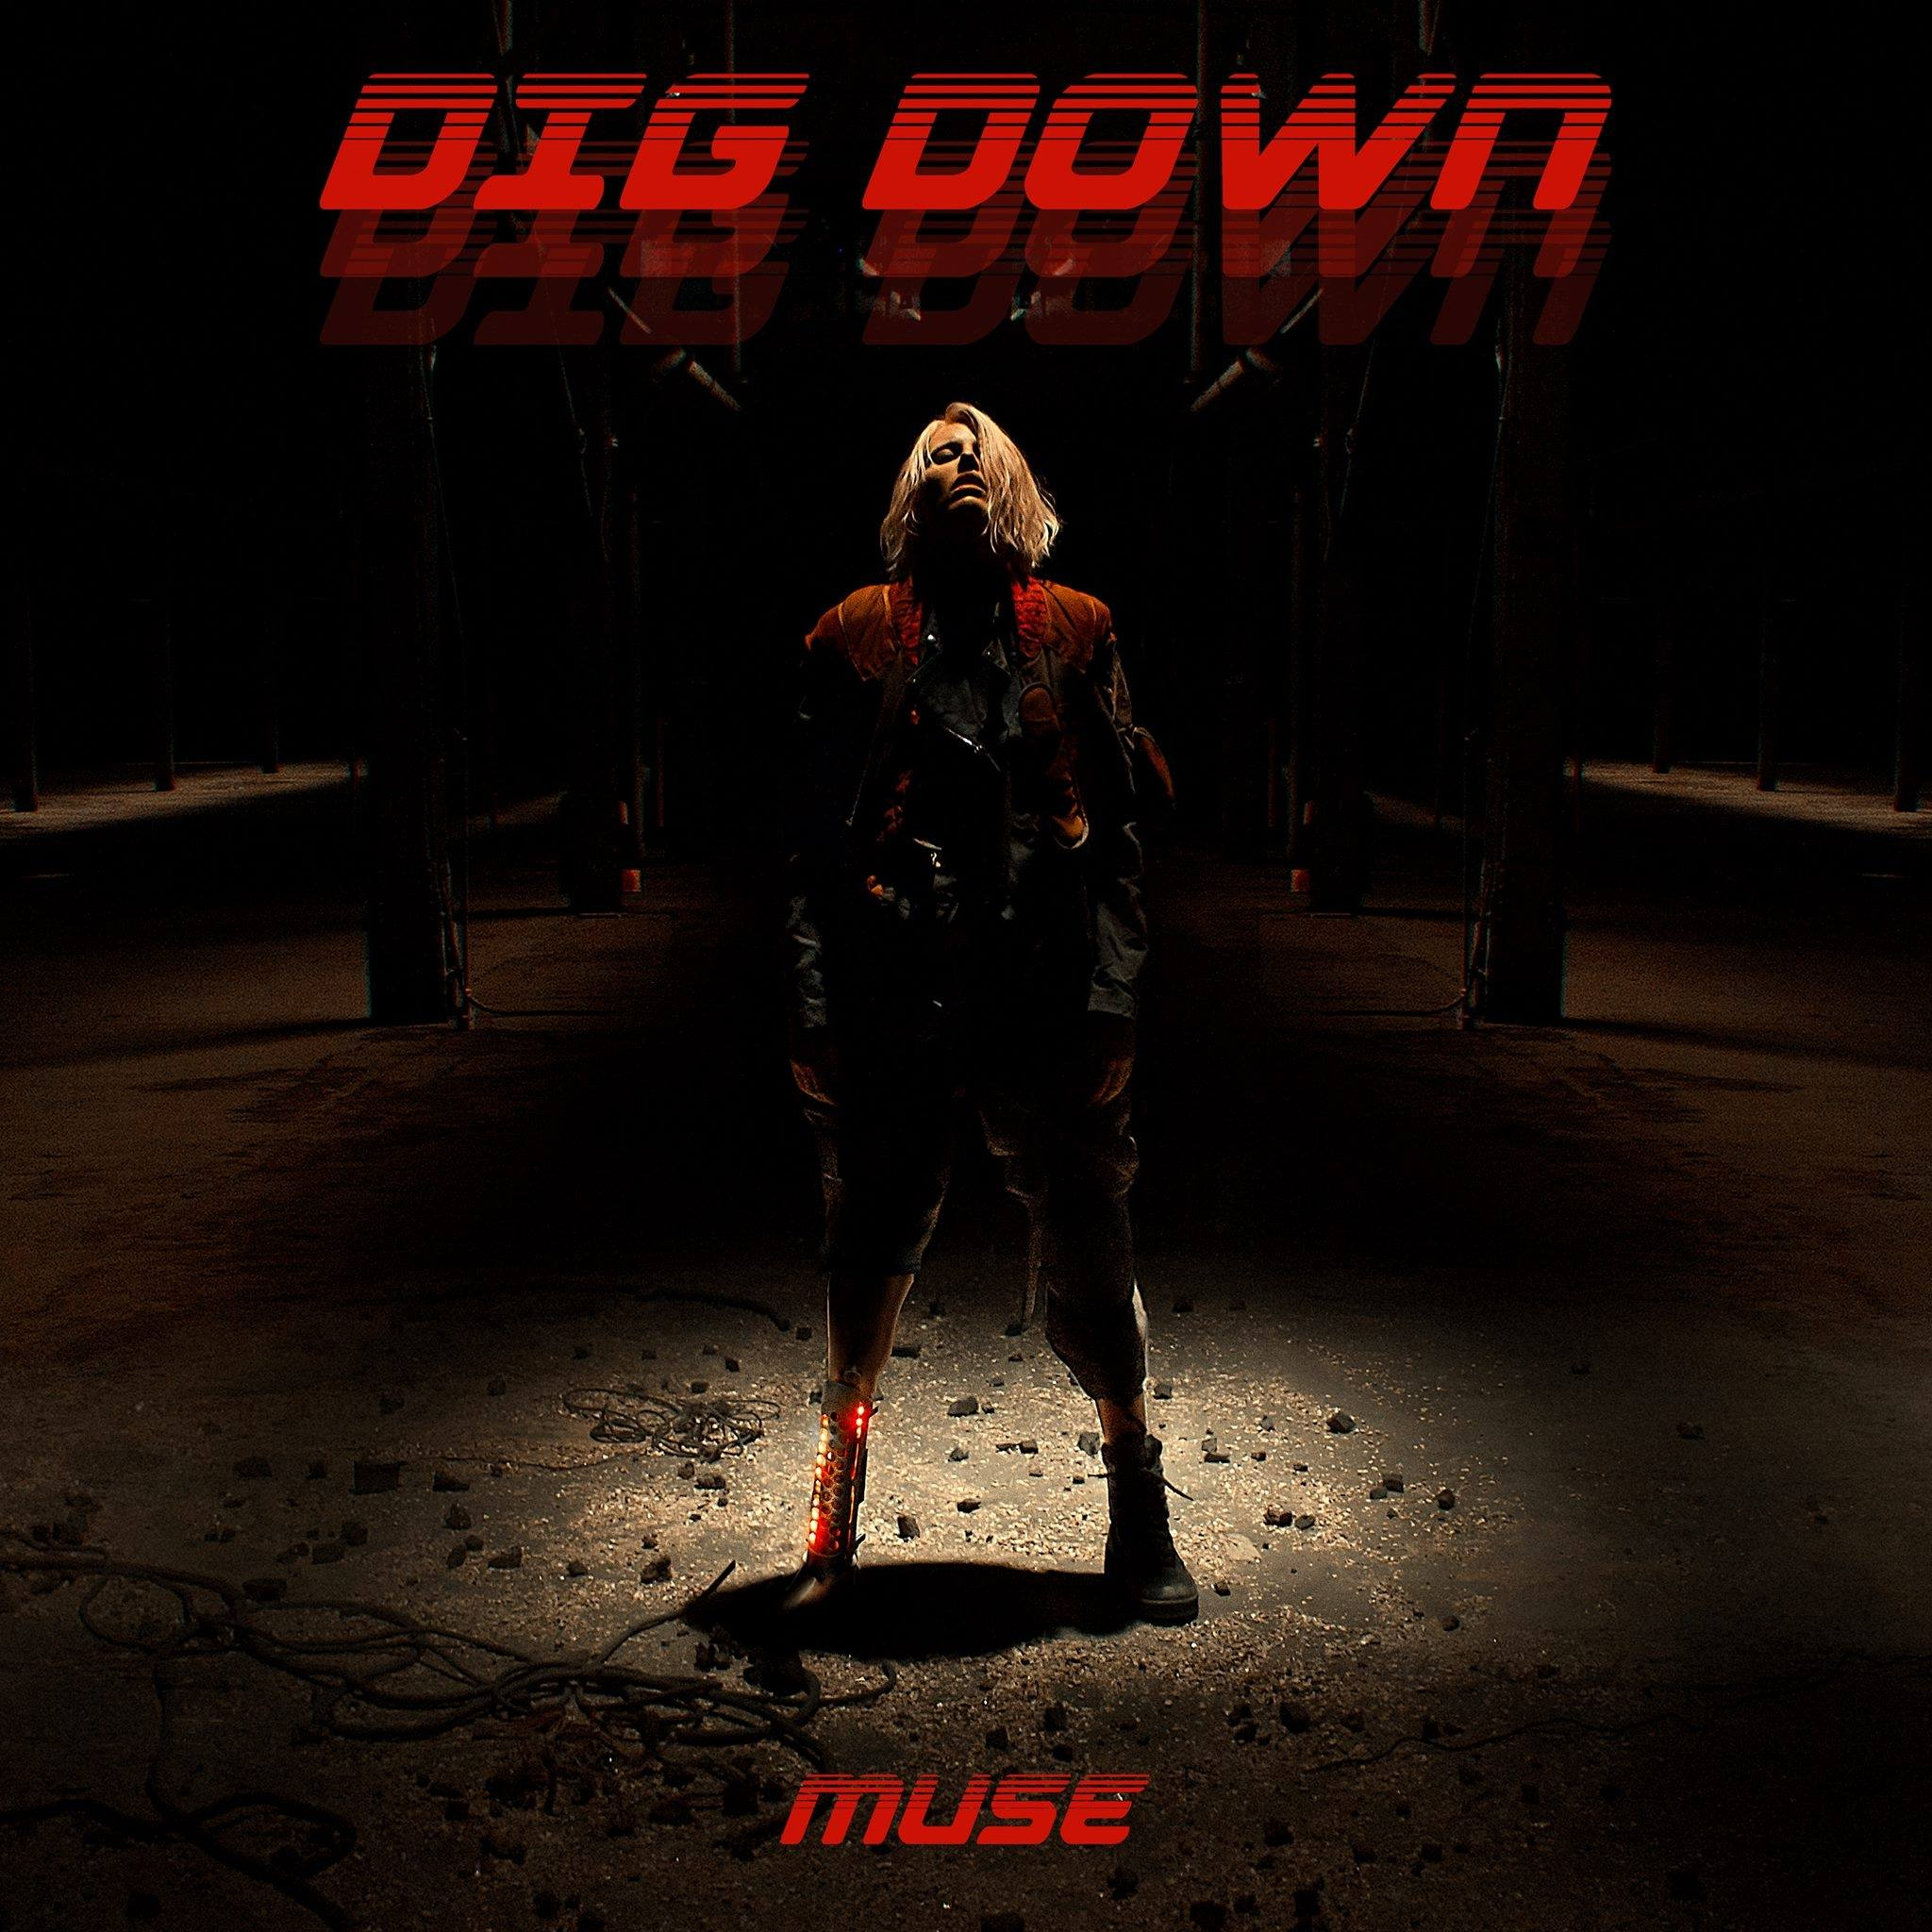 Muse, 'Dig Down' | Track Review